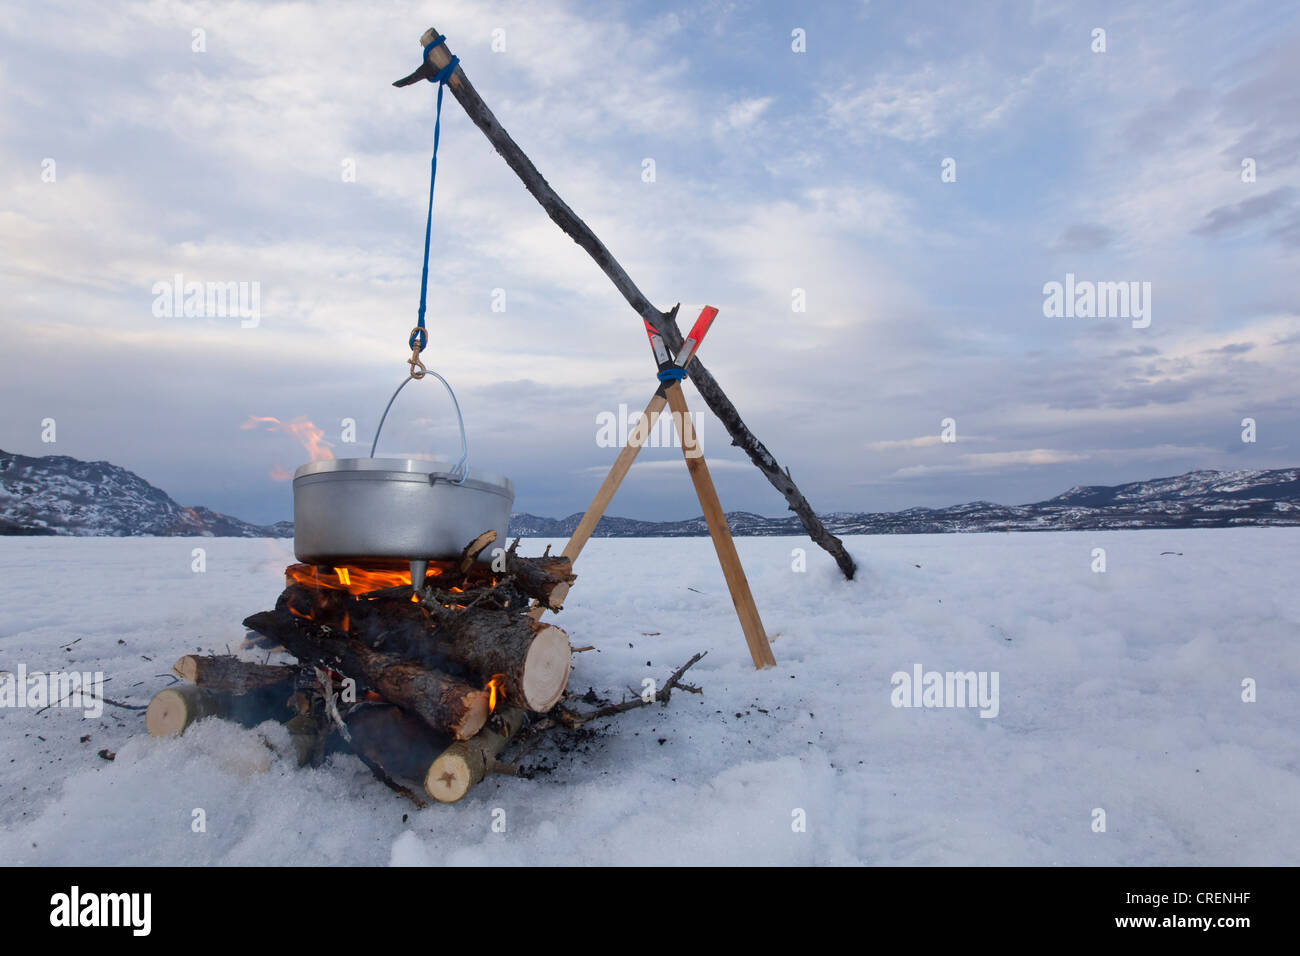 Cooking On A Camp Fire In A Hanging Dutch Oven Ice Of Frozen Lake Stock Photo Alamy